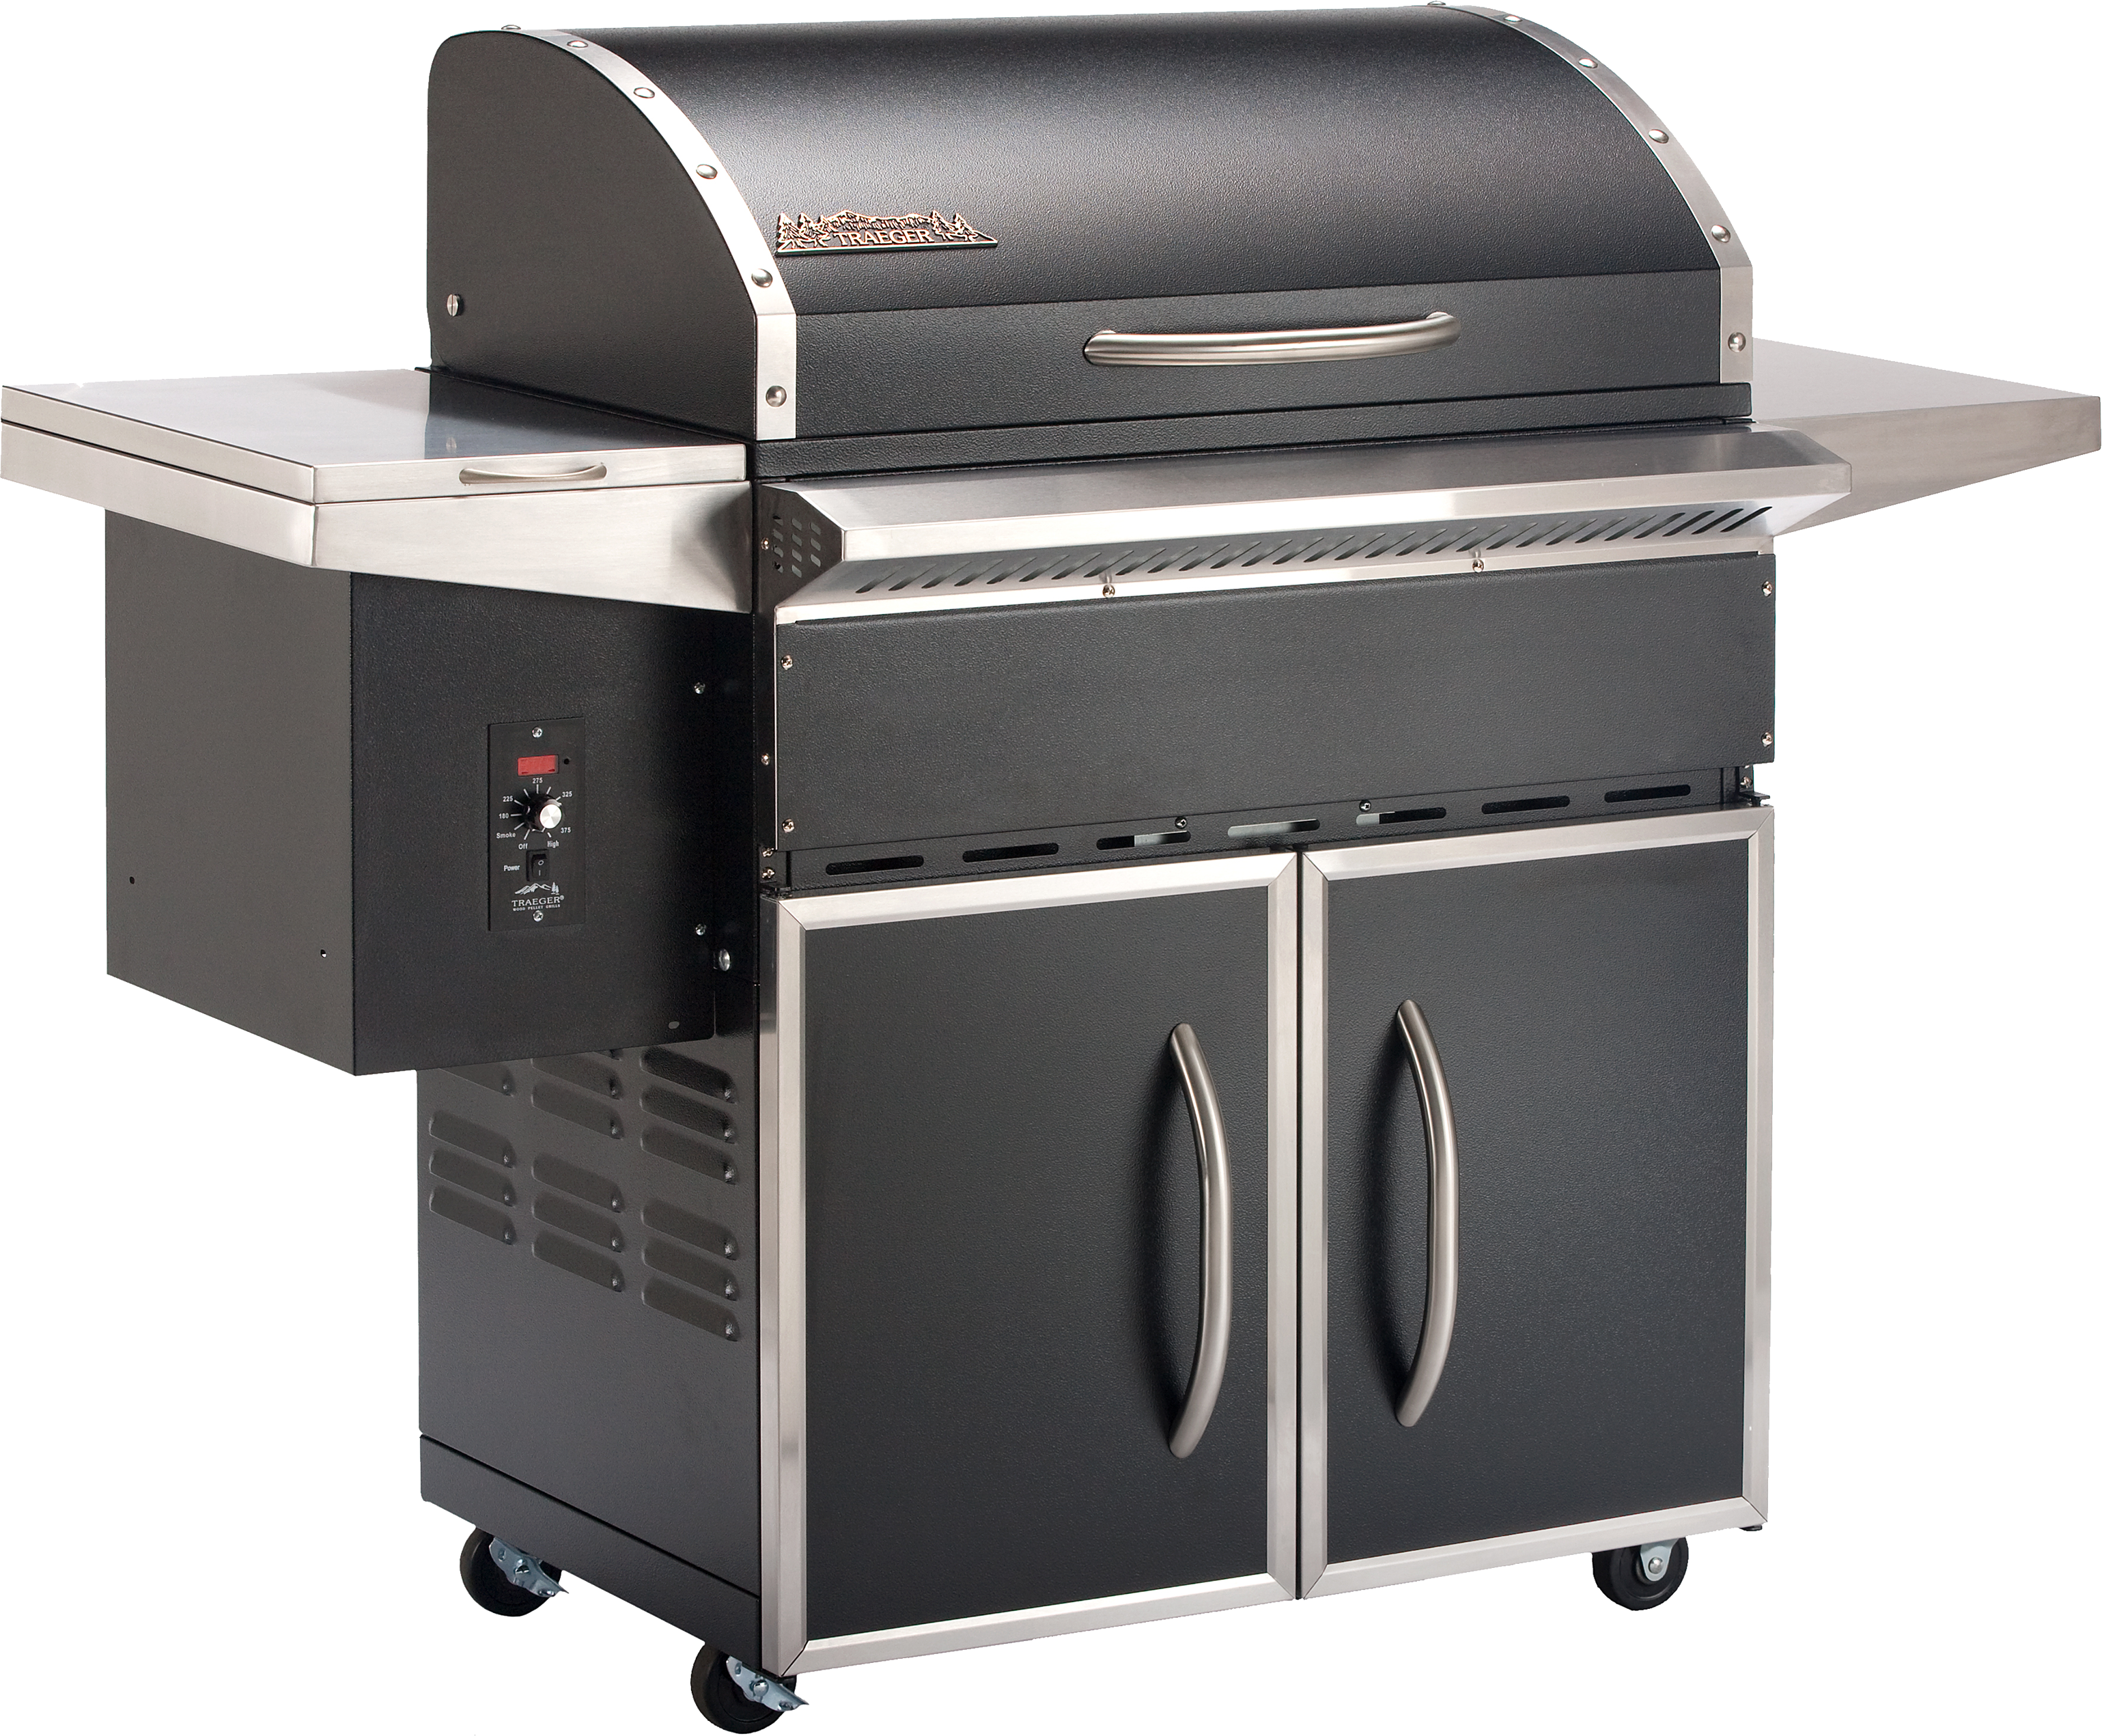 uploads grill grill PNG13973 3